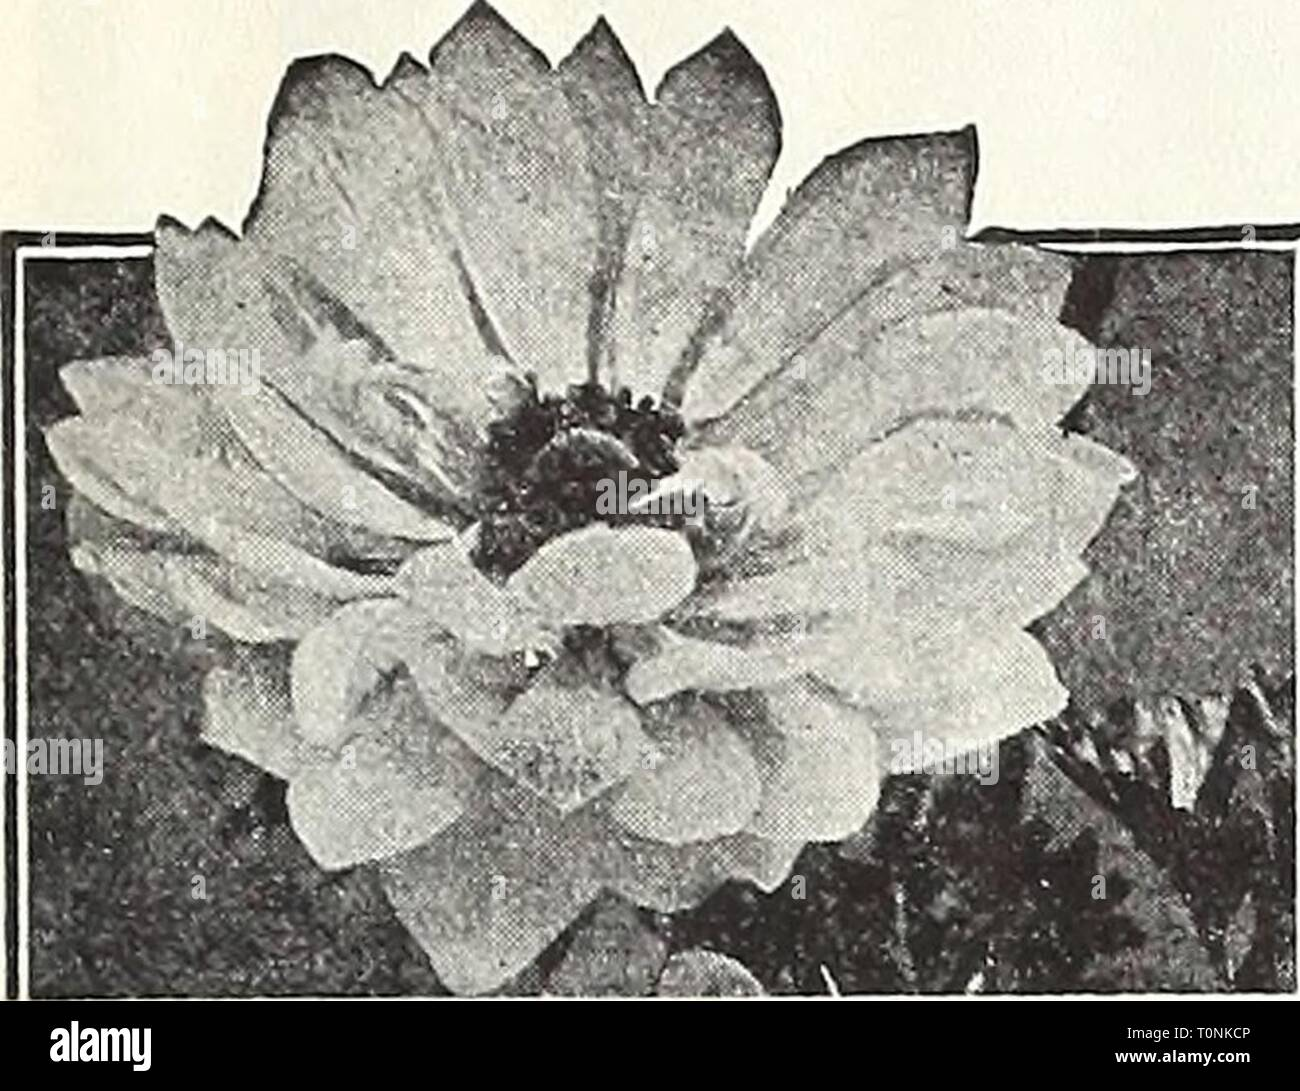 Dreer's autumn 1946 planting guide Dreer's autumn 1946 planting guide  dreersautumn19461946henr Year: 1946  Dreer's Hardy Flowering Bulbs That Bloom During Spring, Summer, & Fall    St. Brigid Anemone Giant Poppy-Flowered Anemones Valuable for growing in the cold frame or the garden if well protected during the winter months. Also much in esteem for growing in the green- house or conservatory. 40-025 Giant French Mixed {De Caen). Includes a wonderful range of colors—blue, white, rose, scarlet, etc. 3 for 2Sc; 12 for 80c; 25 for $1.40; 100 for $5.00. 40-027 St. Brigid (Creagh Castle Strain). A  - Stock Image